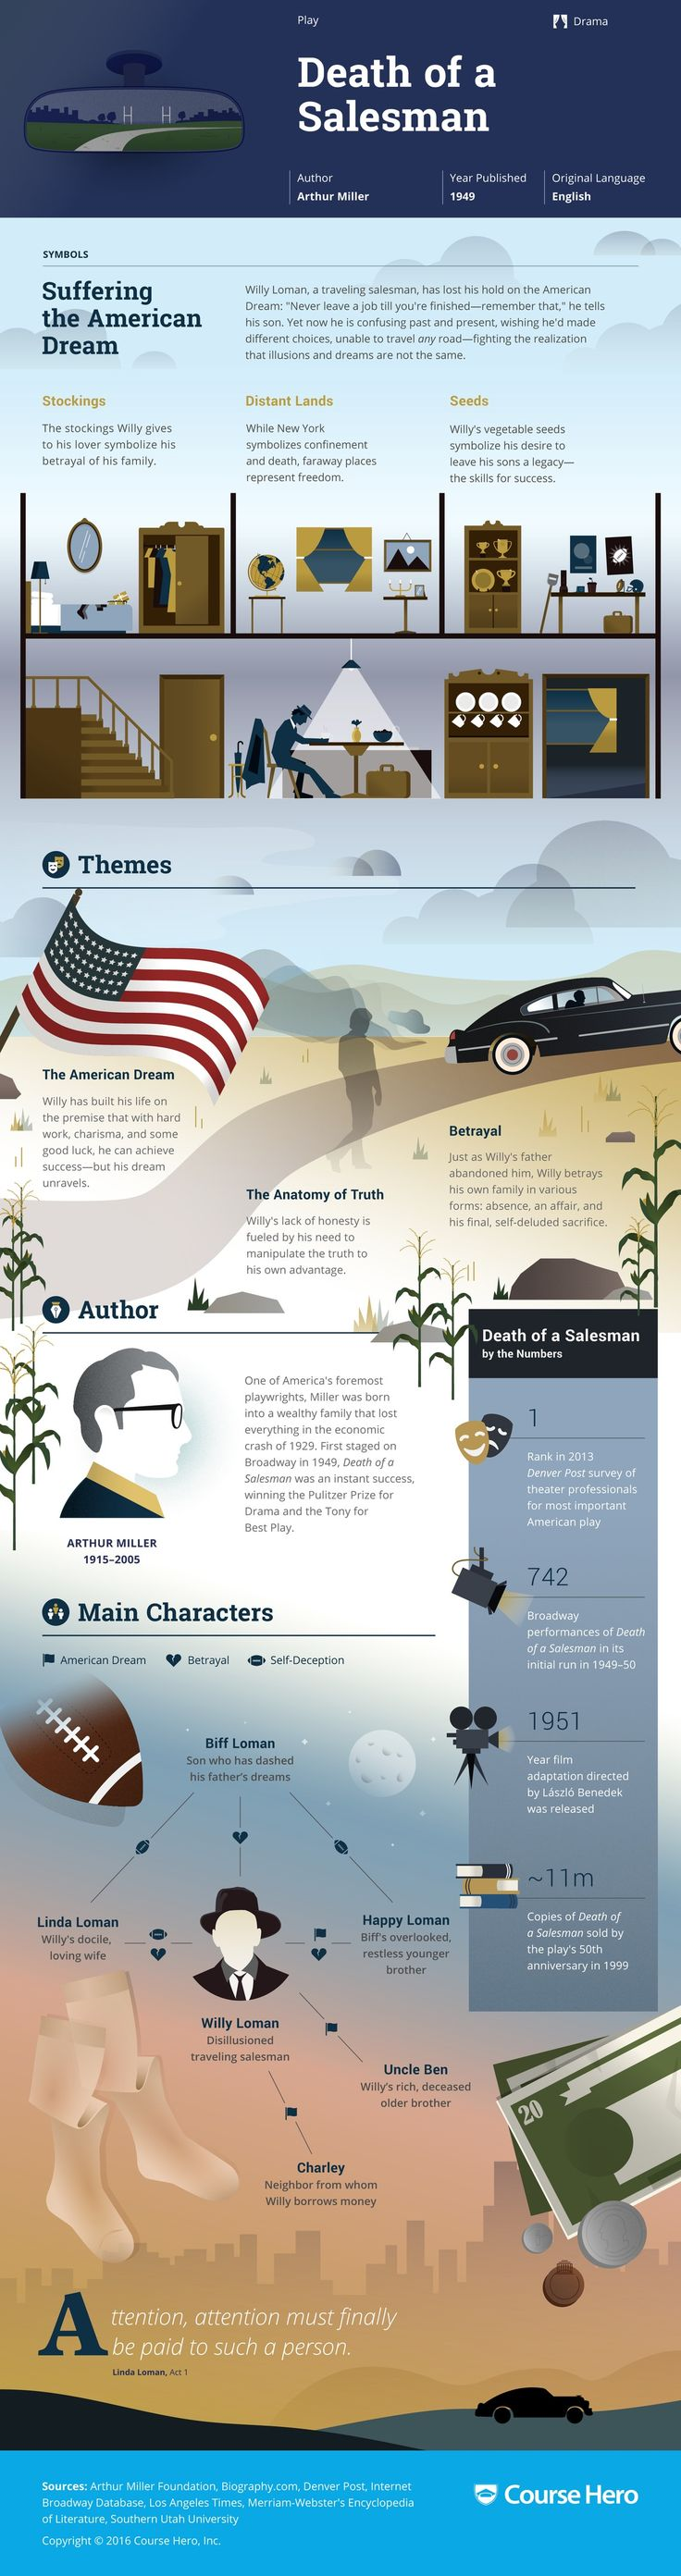 Death of a Salesman Infographic | Course Hero